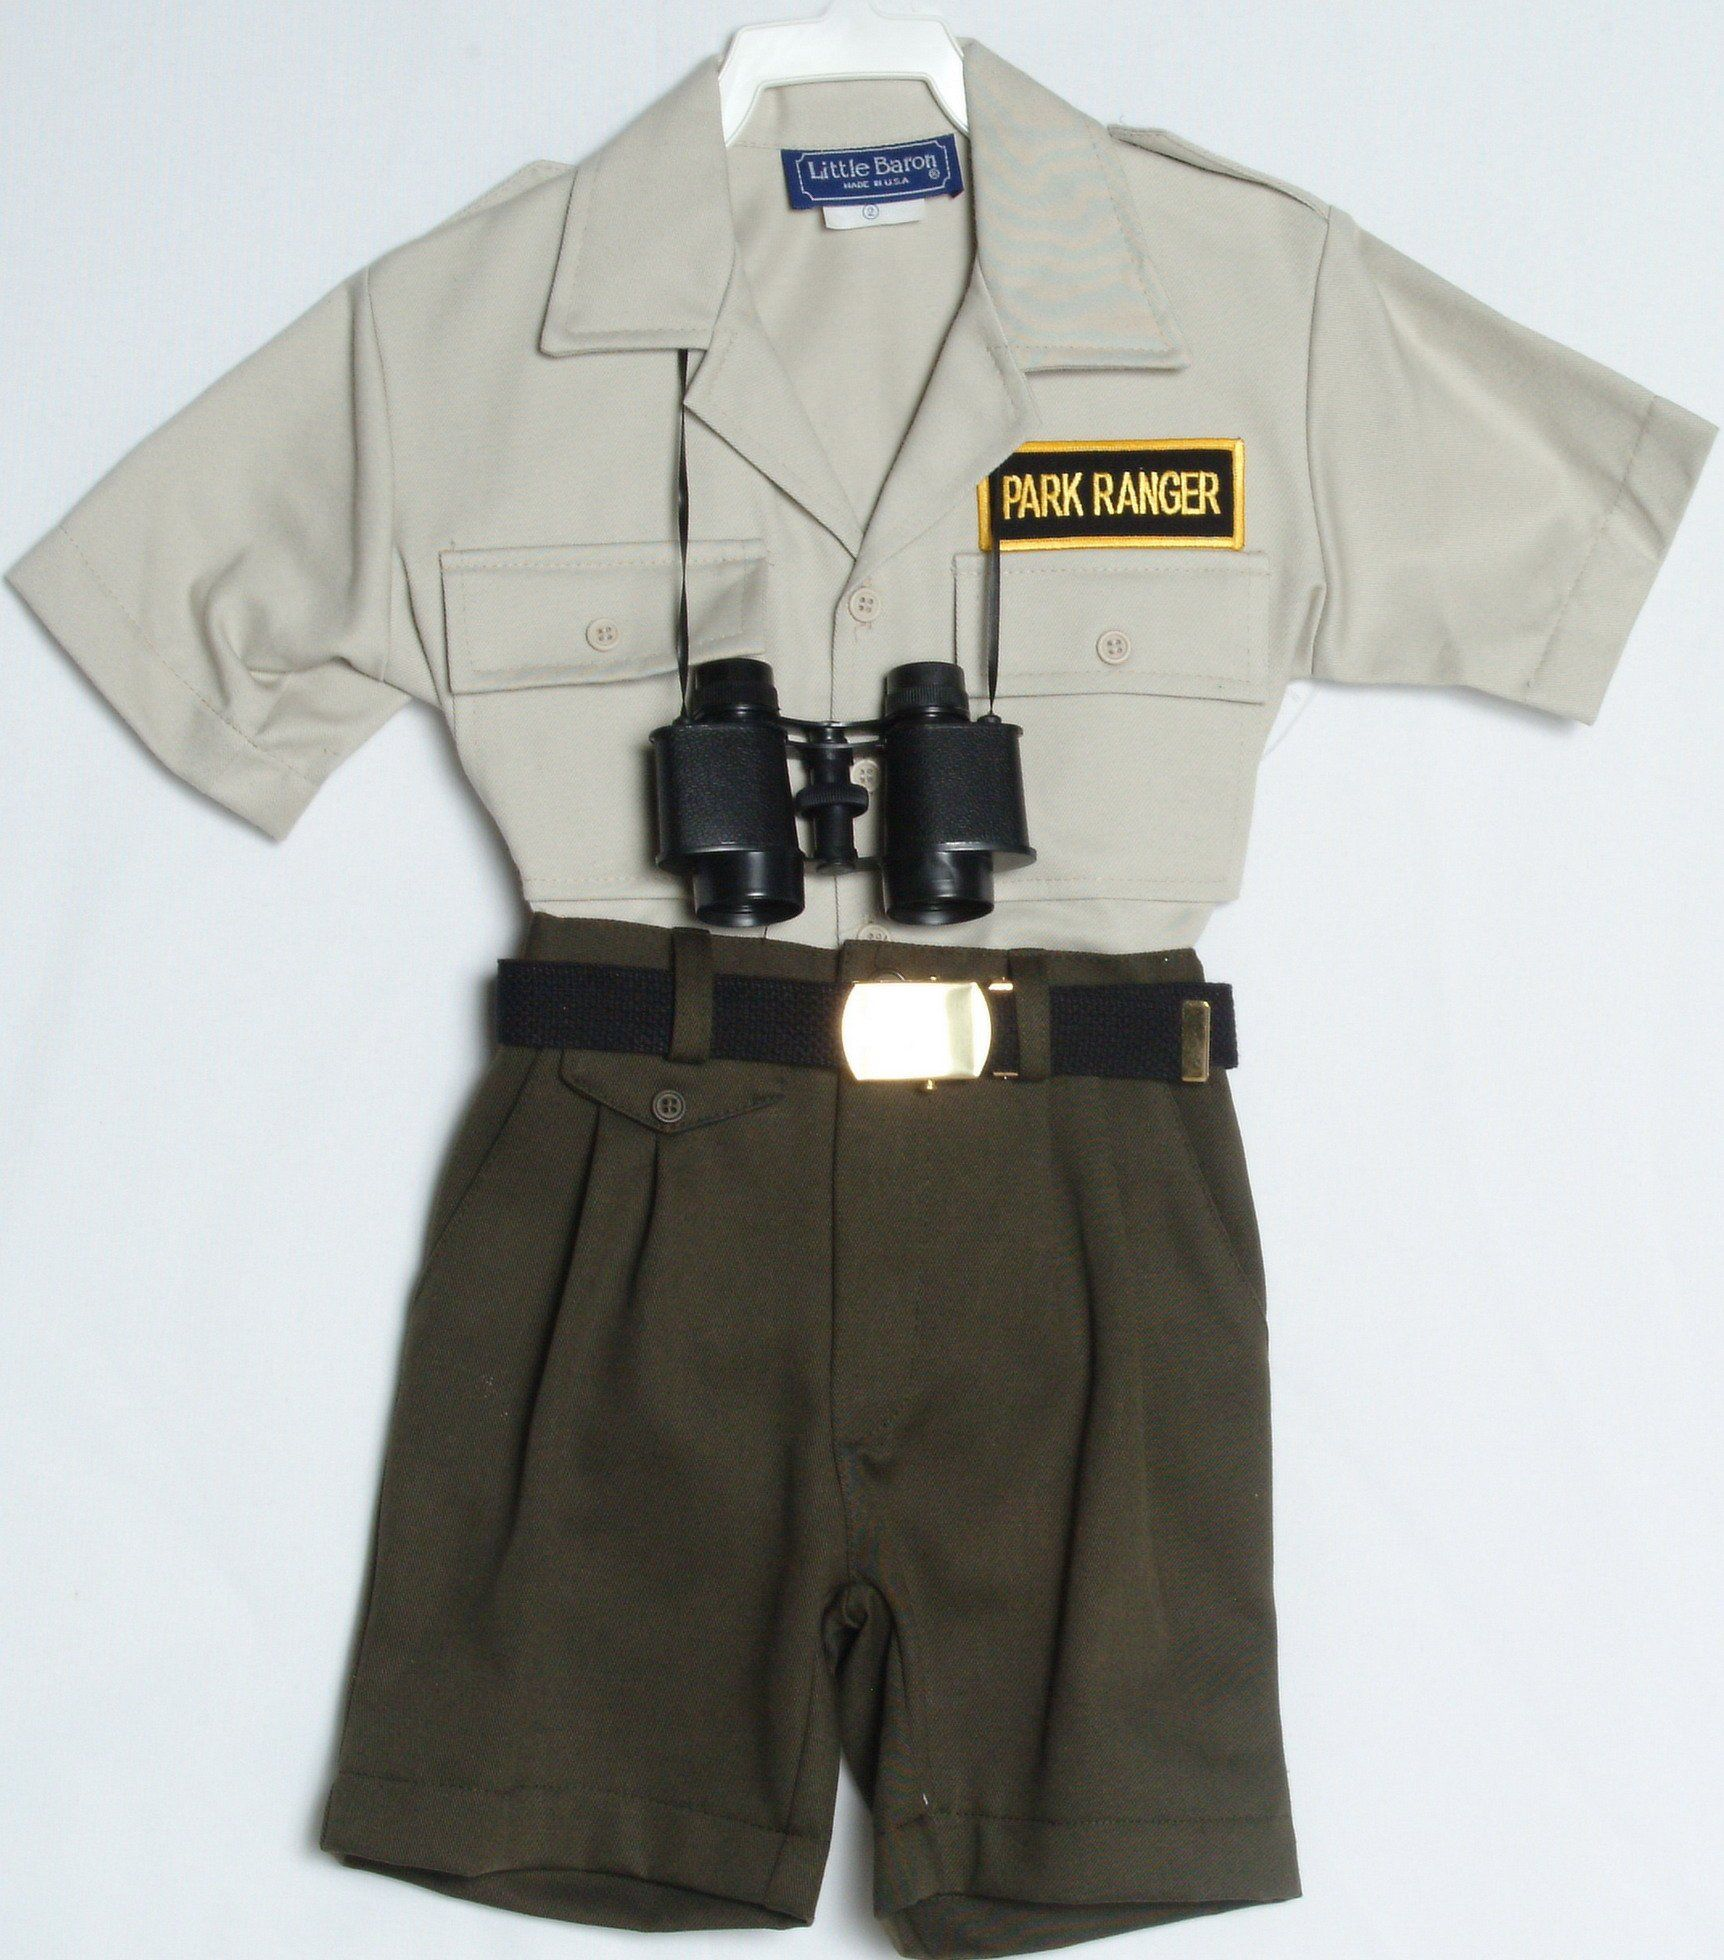 2cb4e8bdd8aed Amazon.com: Children's Park Ranger Outfit (6): Infant And Toddler ...